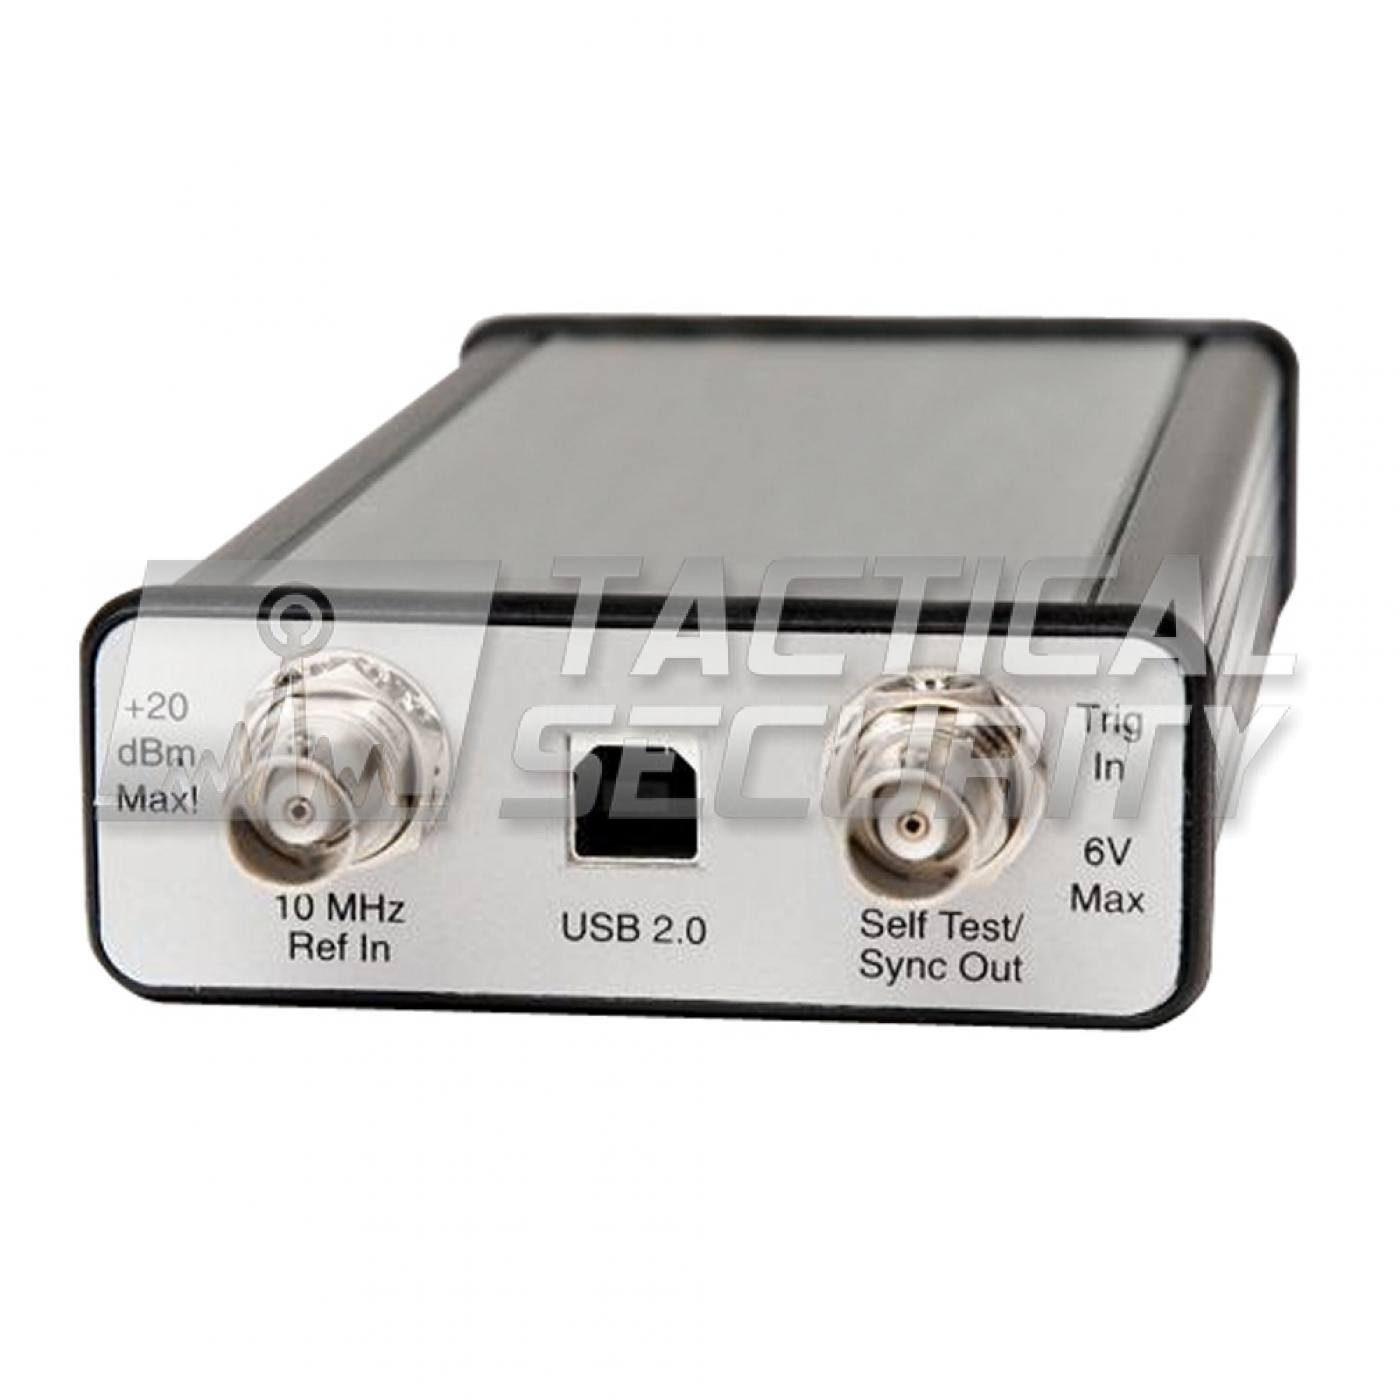 Analizador de Espectro USB 12.4Ghz antenas